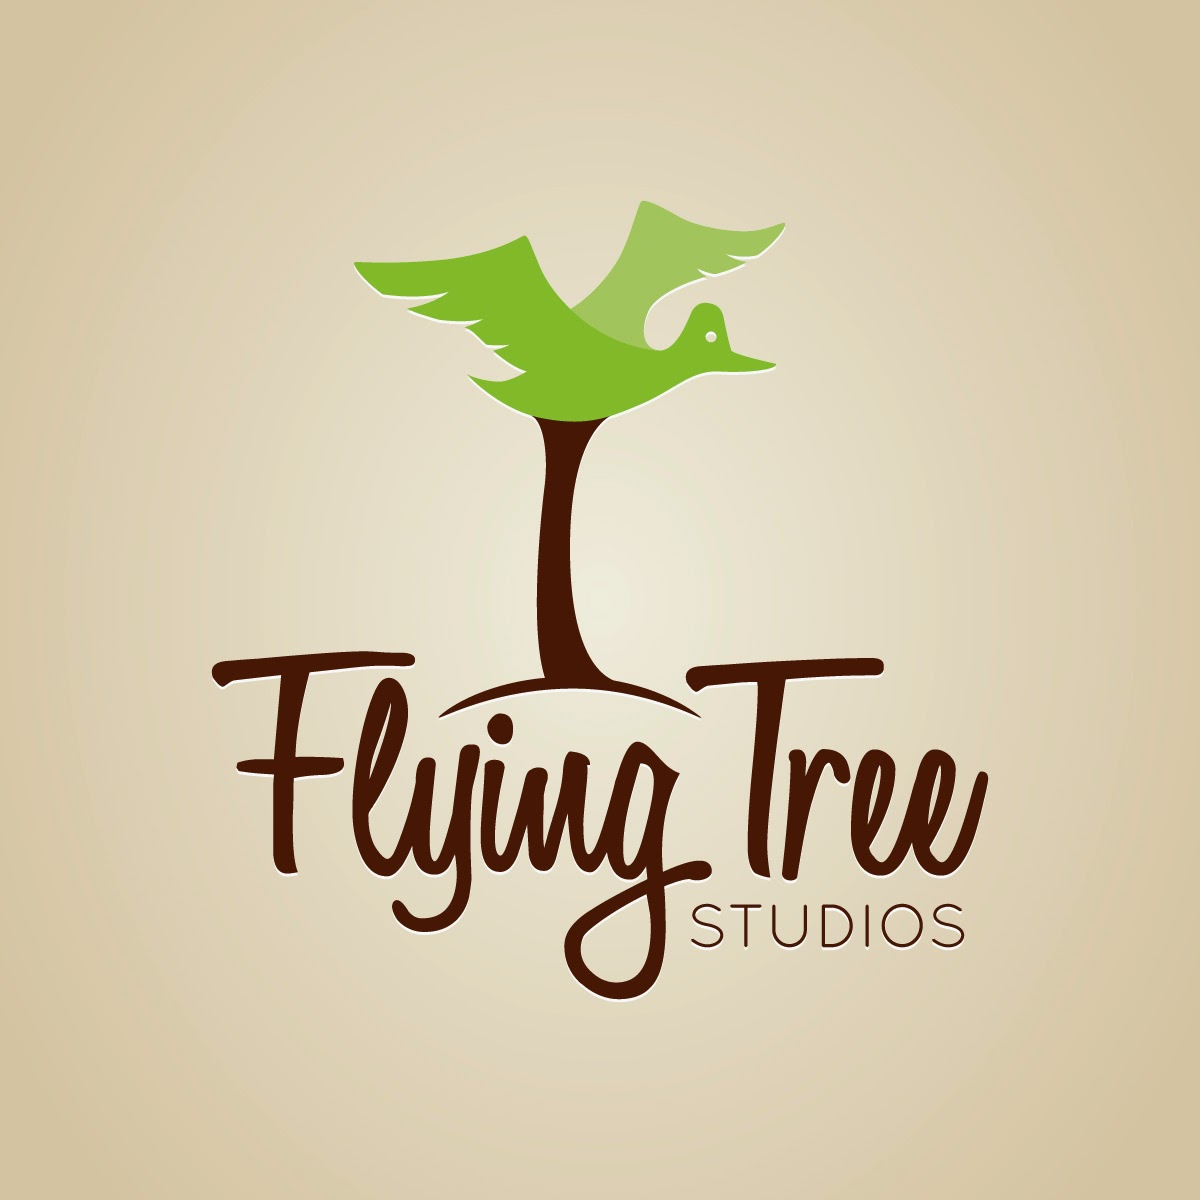 Visit Flying Tree Studios!